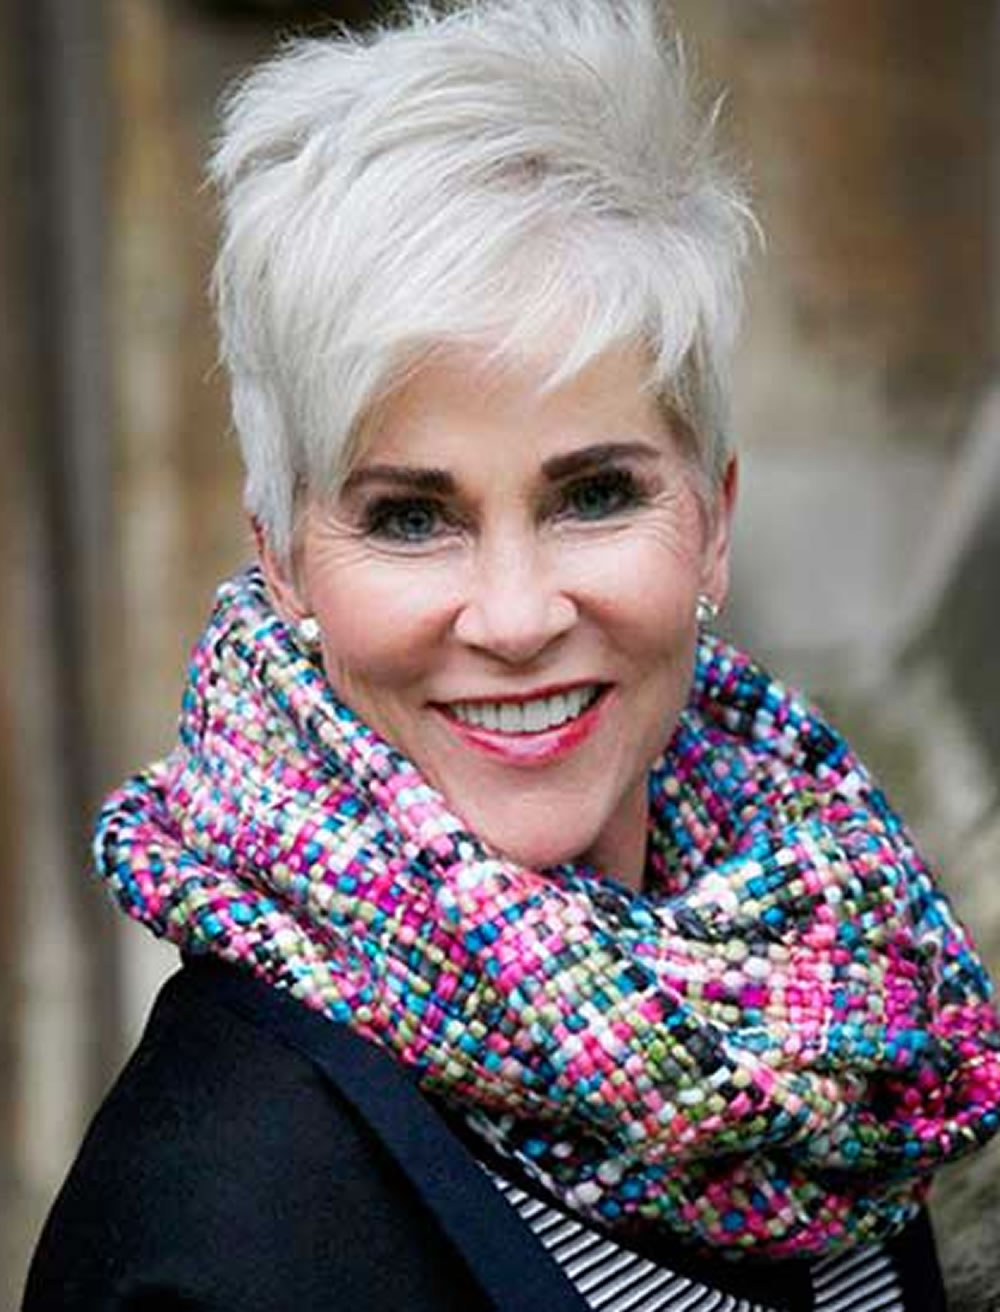 Classy Pixie Short Haircuts For Older Women – Hairstyles Regarding Classy Pixie Haircuts (View 11 of 20)